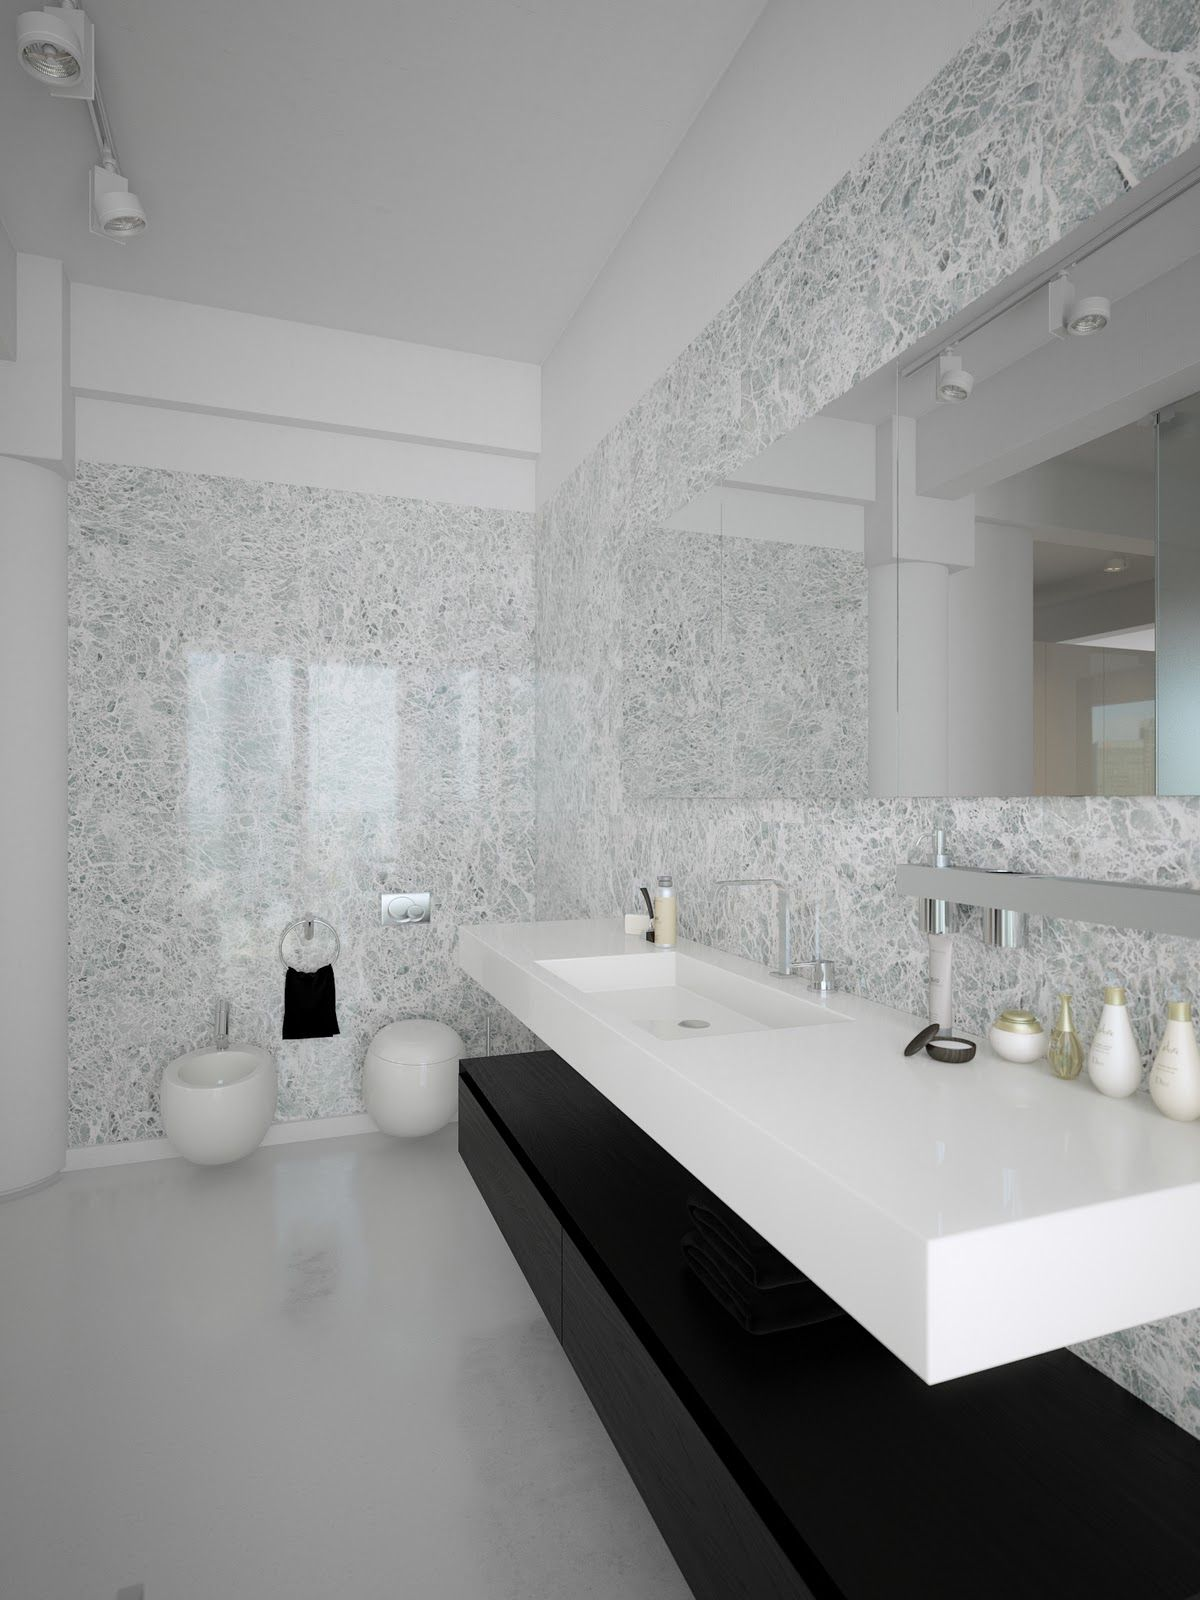 Coolest minimalist modern bathroom design contemporary for Contemporary luxury bathroom ideas